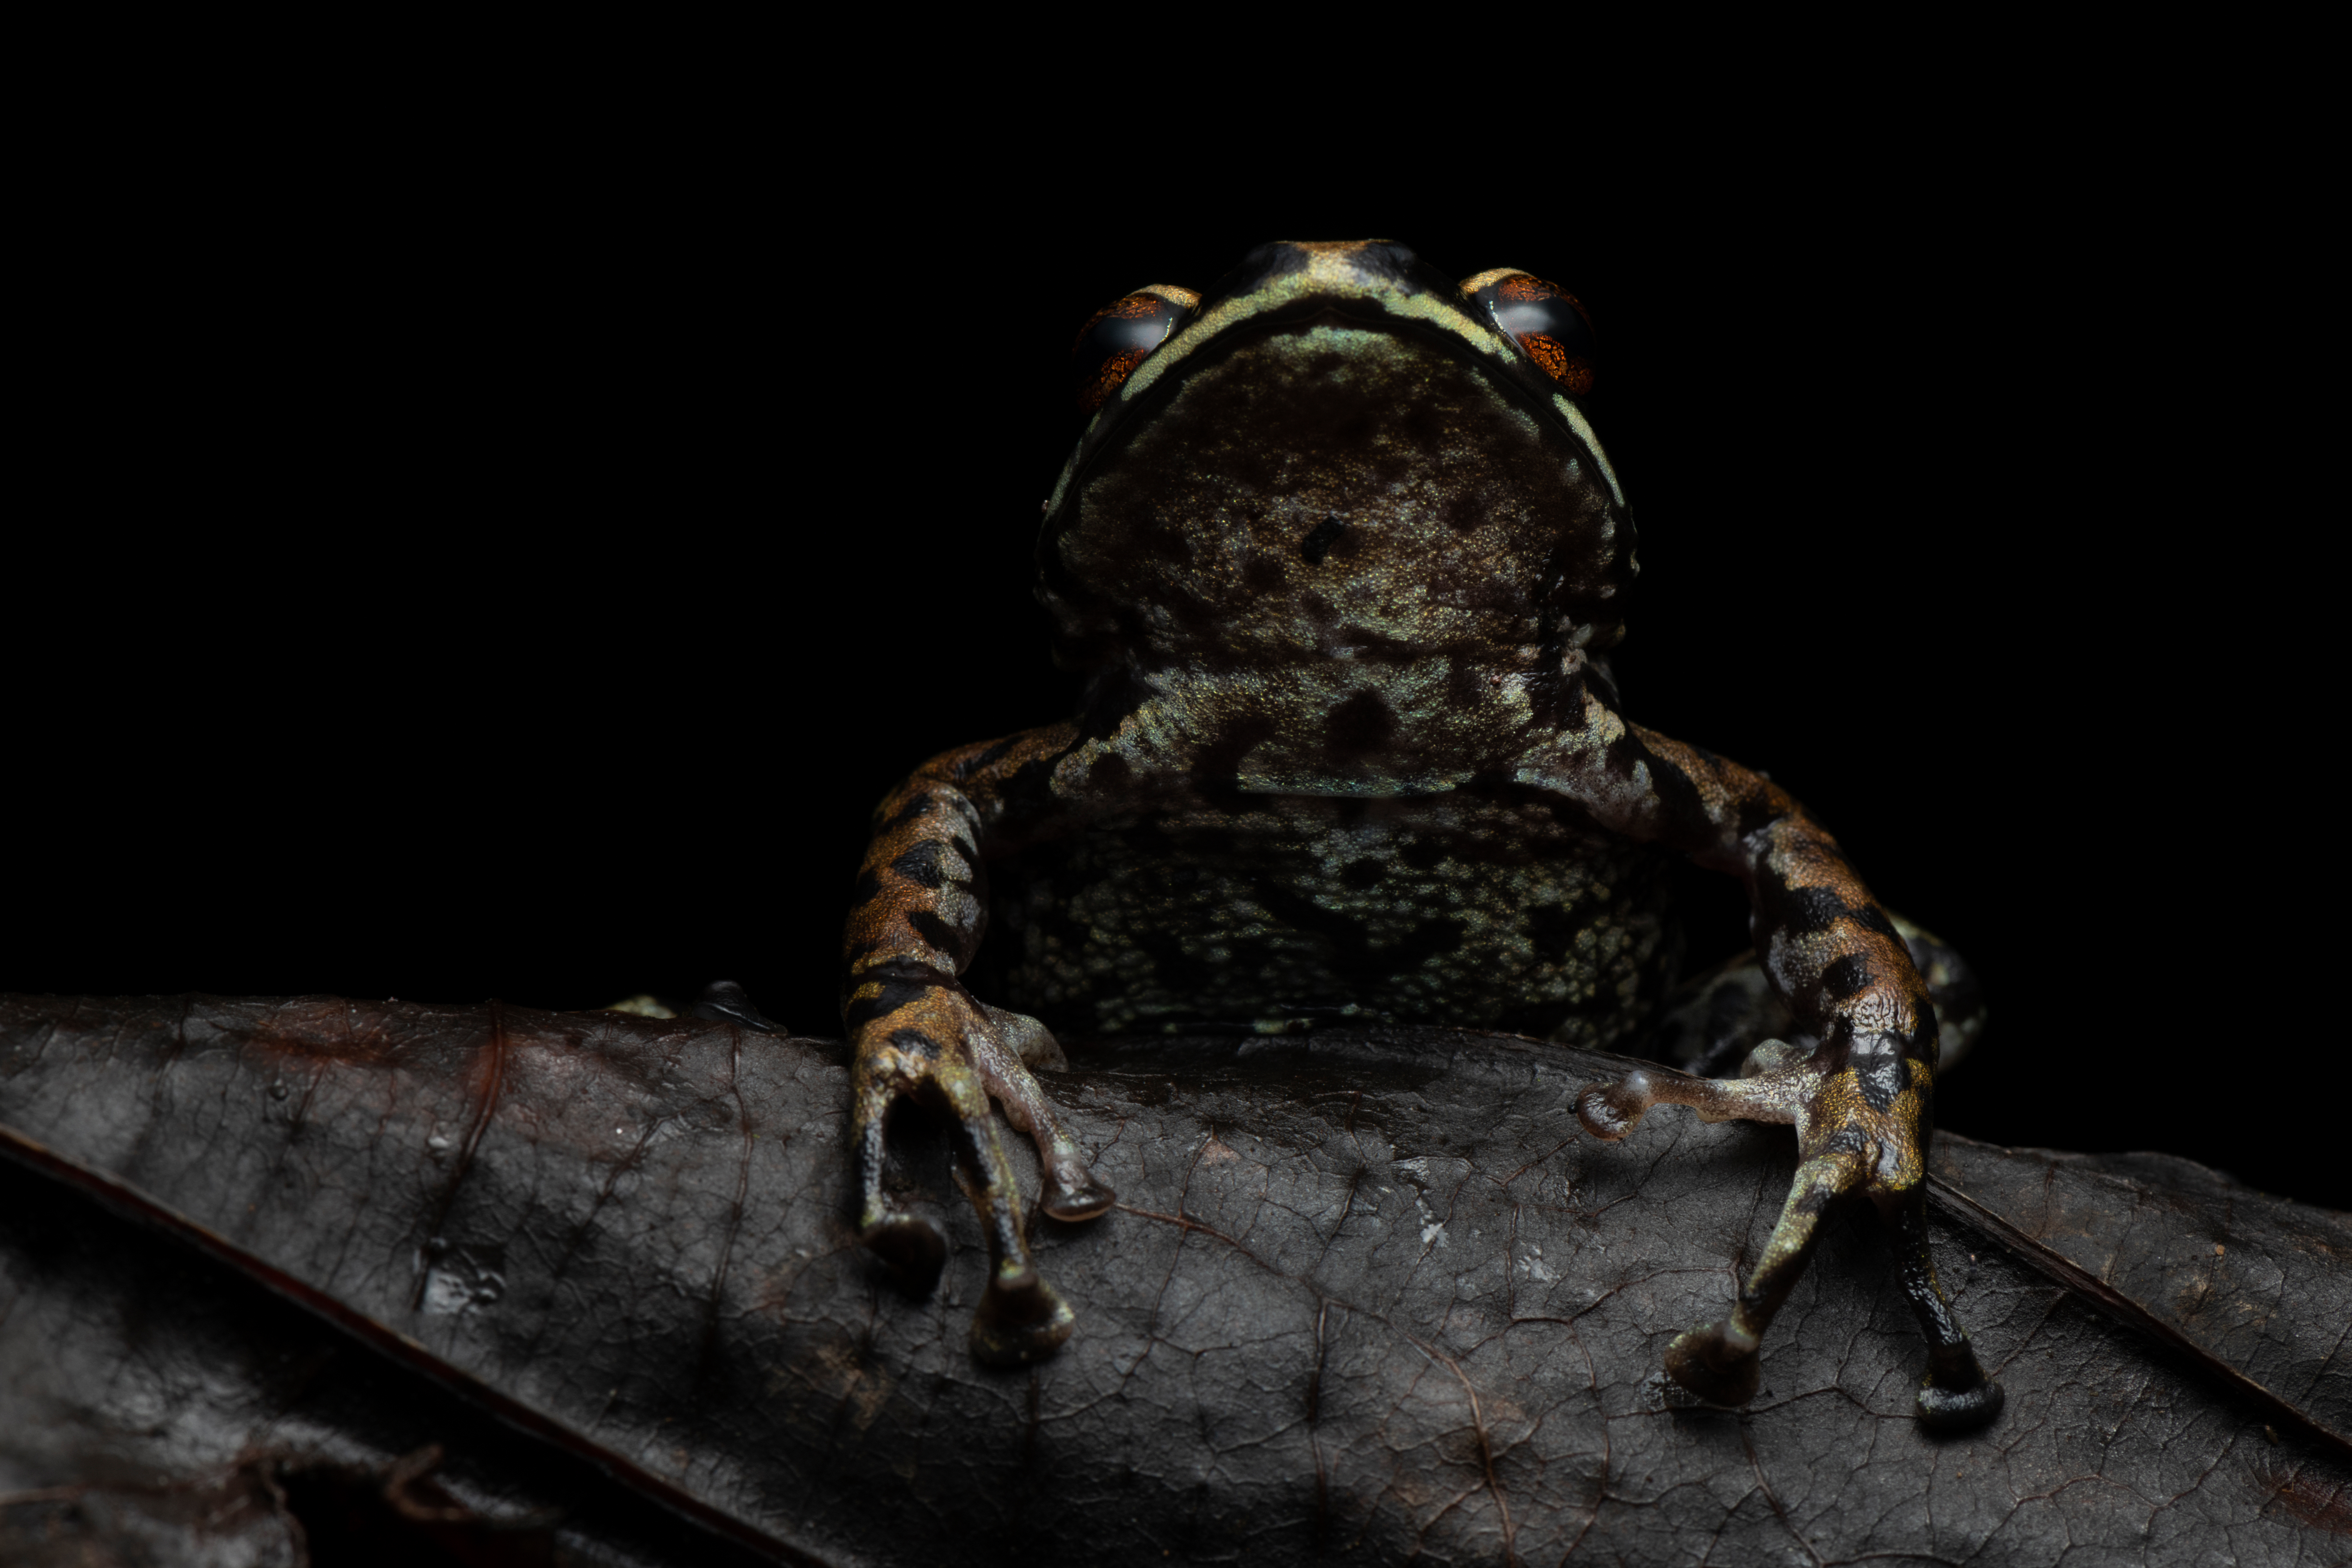 """Artist comments: """"This beautiful rain frog was found on a late-night hike in the foothills of the Ecuadorian Andes. I used a heavily diffused off-camera flash with a reflector to try to highlight the rich color and texture of its skin."""""""